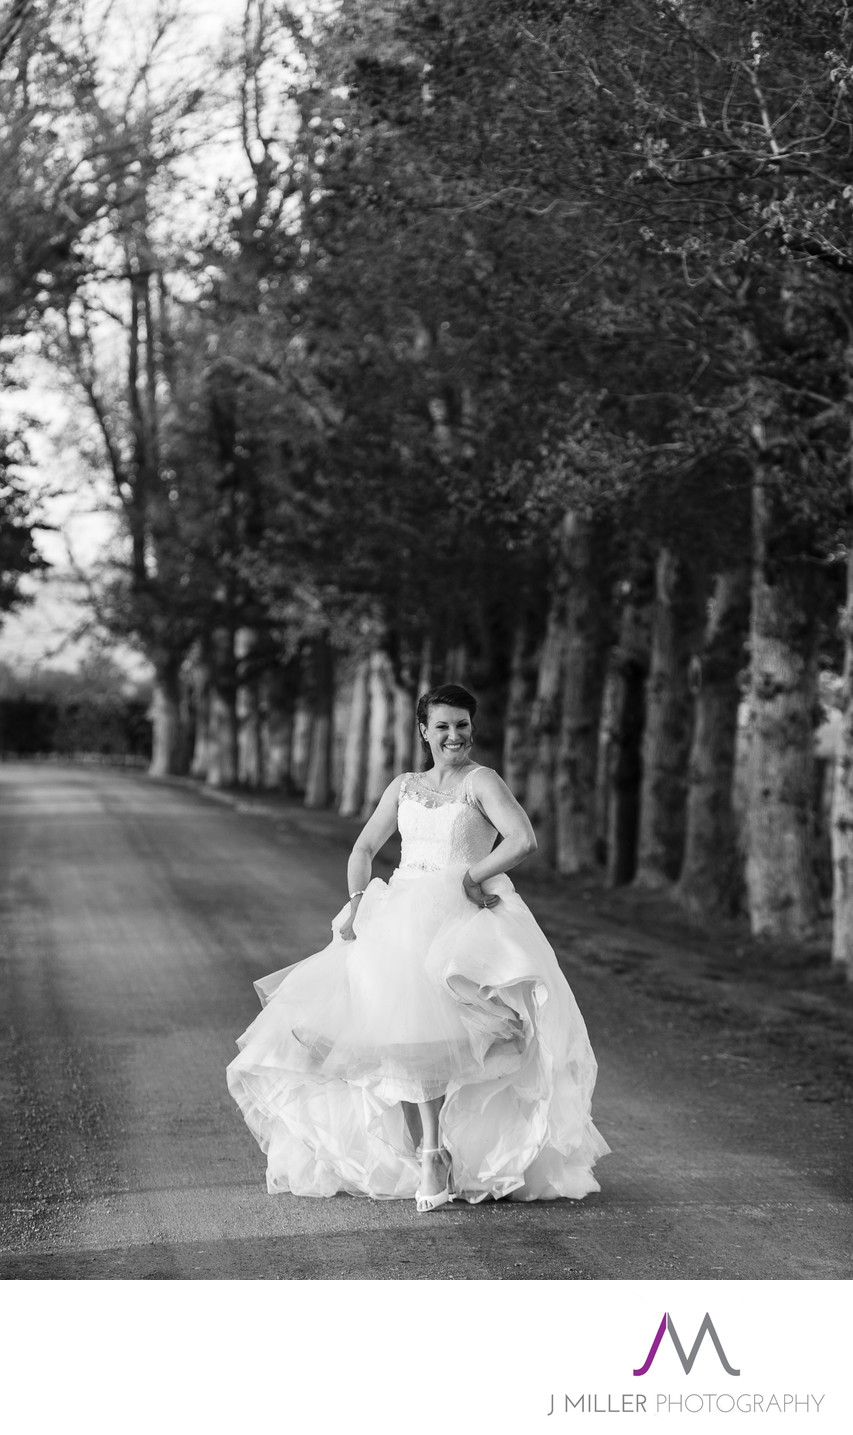 Byron Bay Wedding Photographer J Miller Photography 193